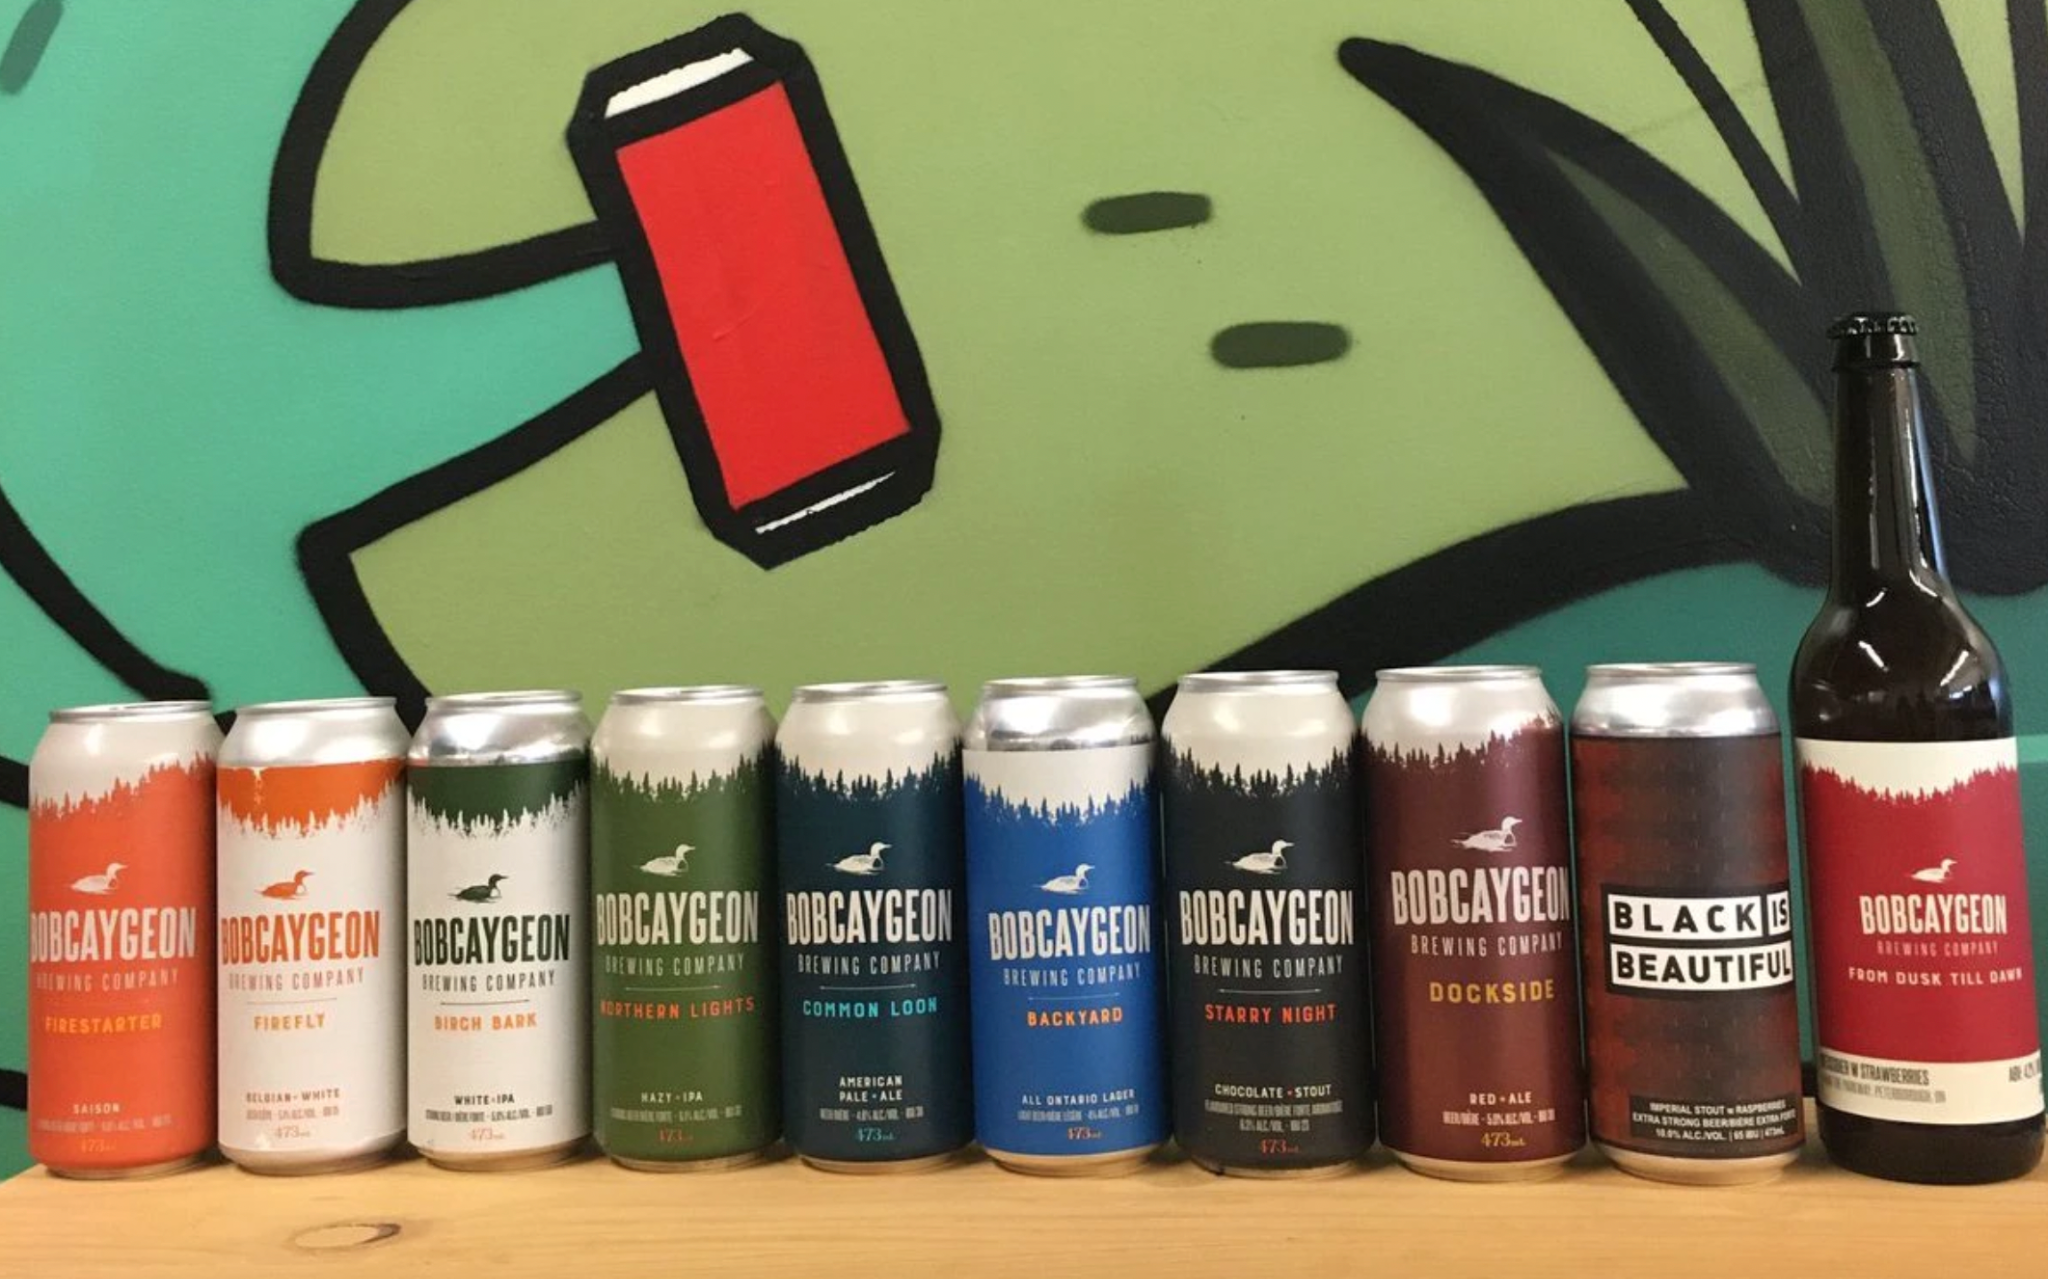 Bobcaygeon Brewing products